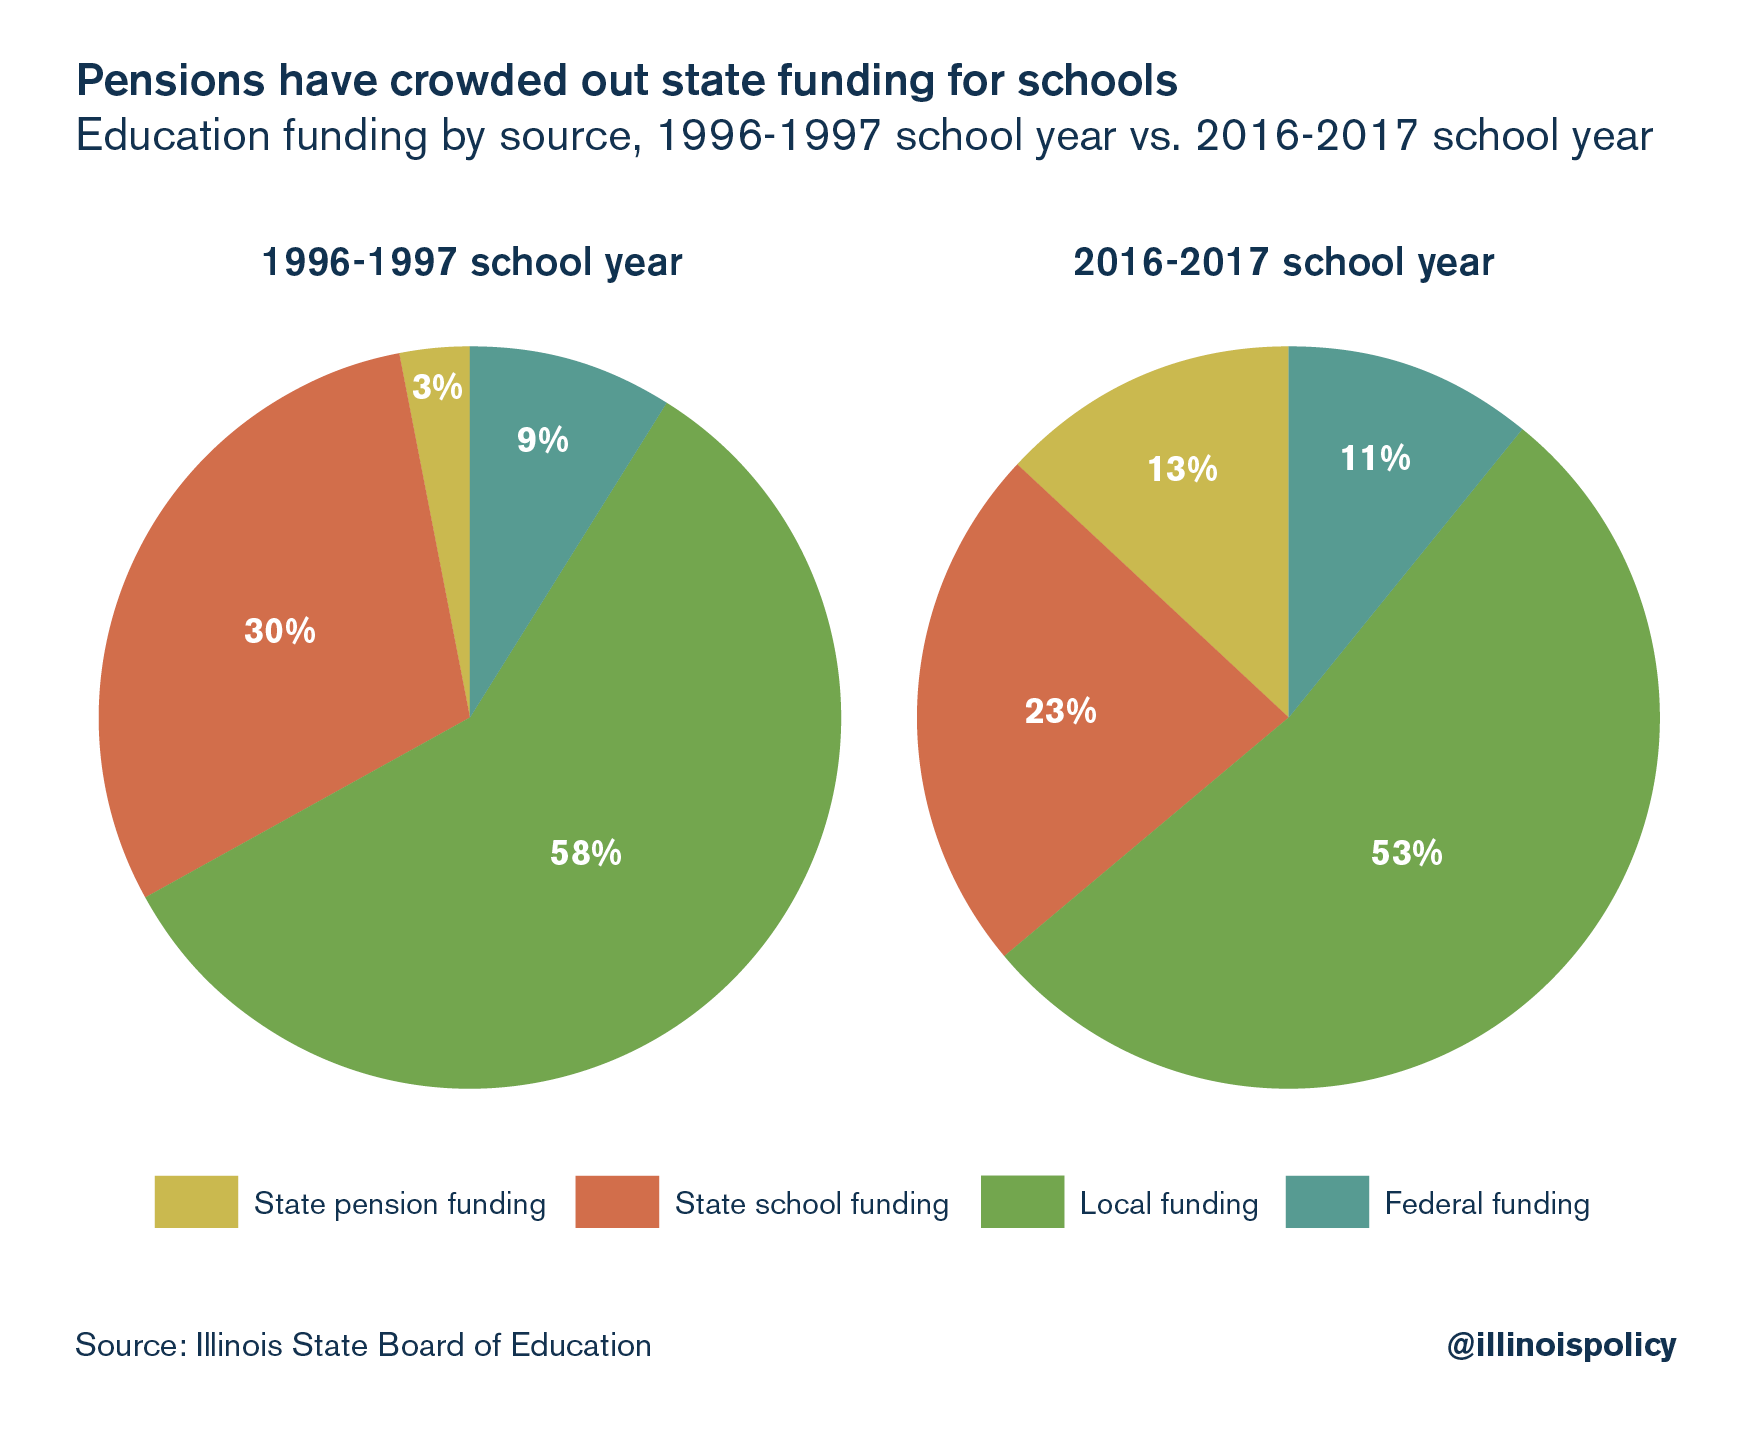 Pensions have crowded out state funding for schools